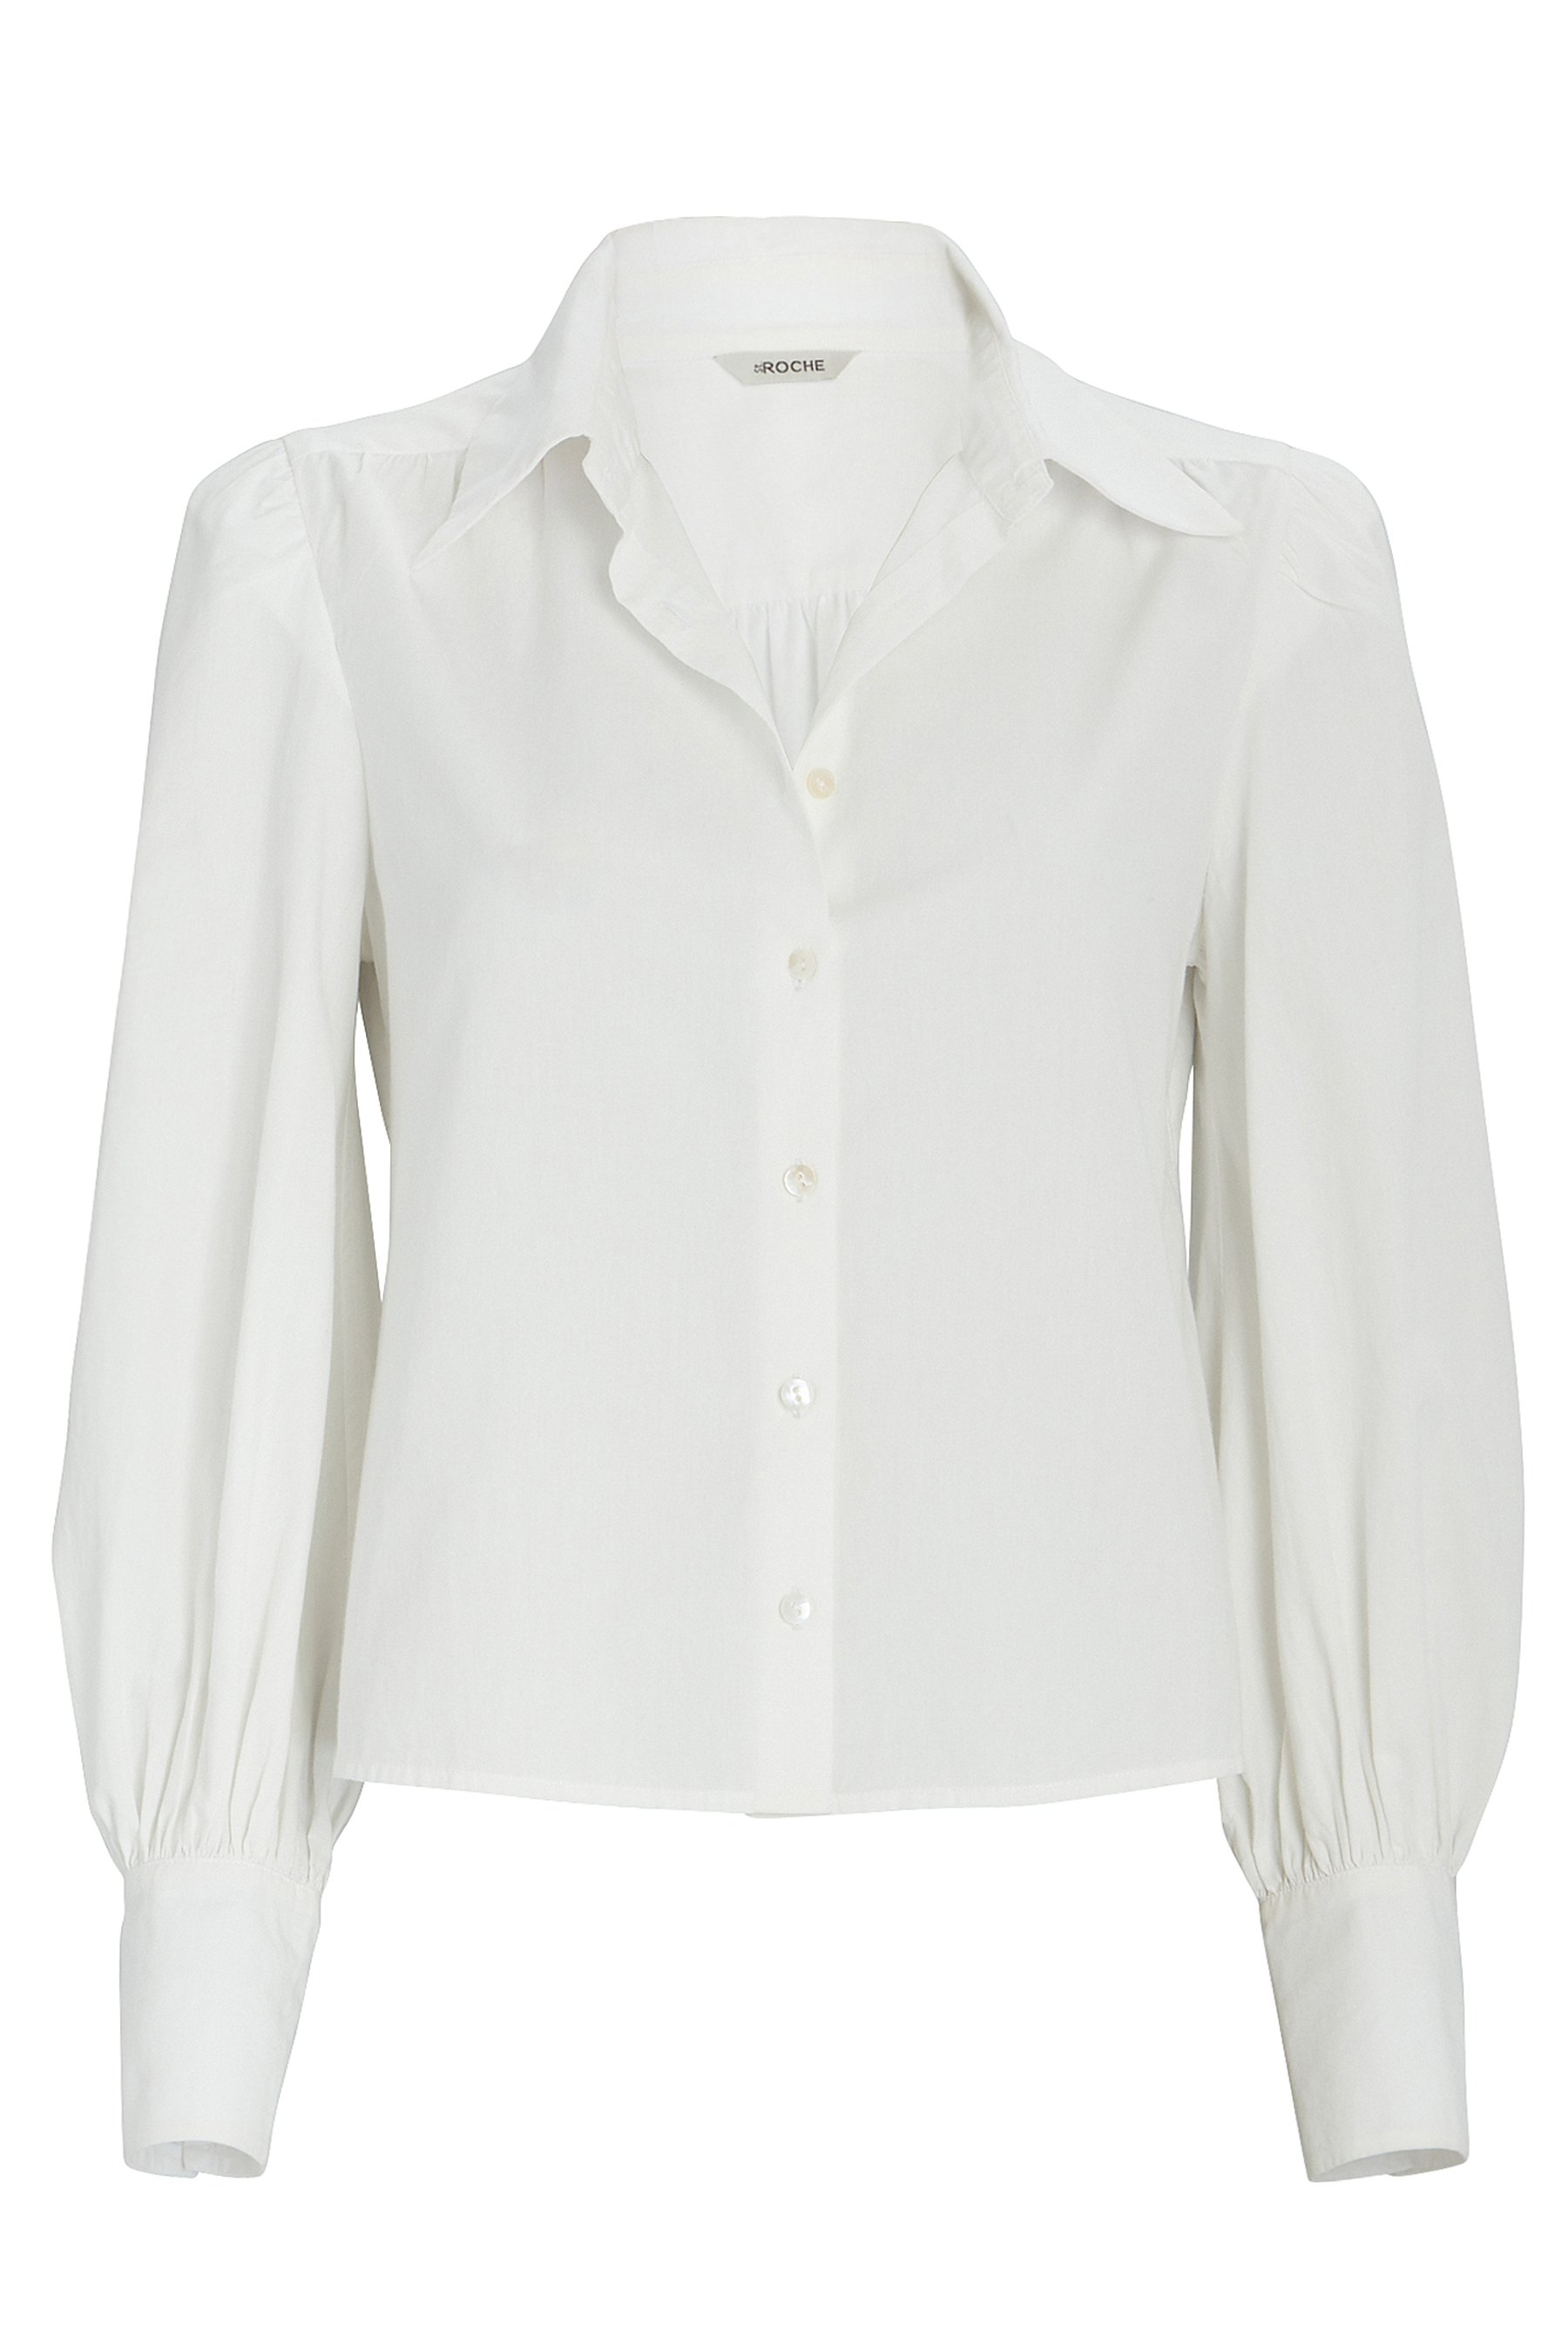 VITA BLOUSE, WHITE by St. Roche - 1